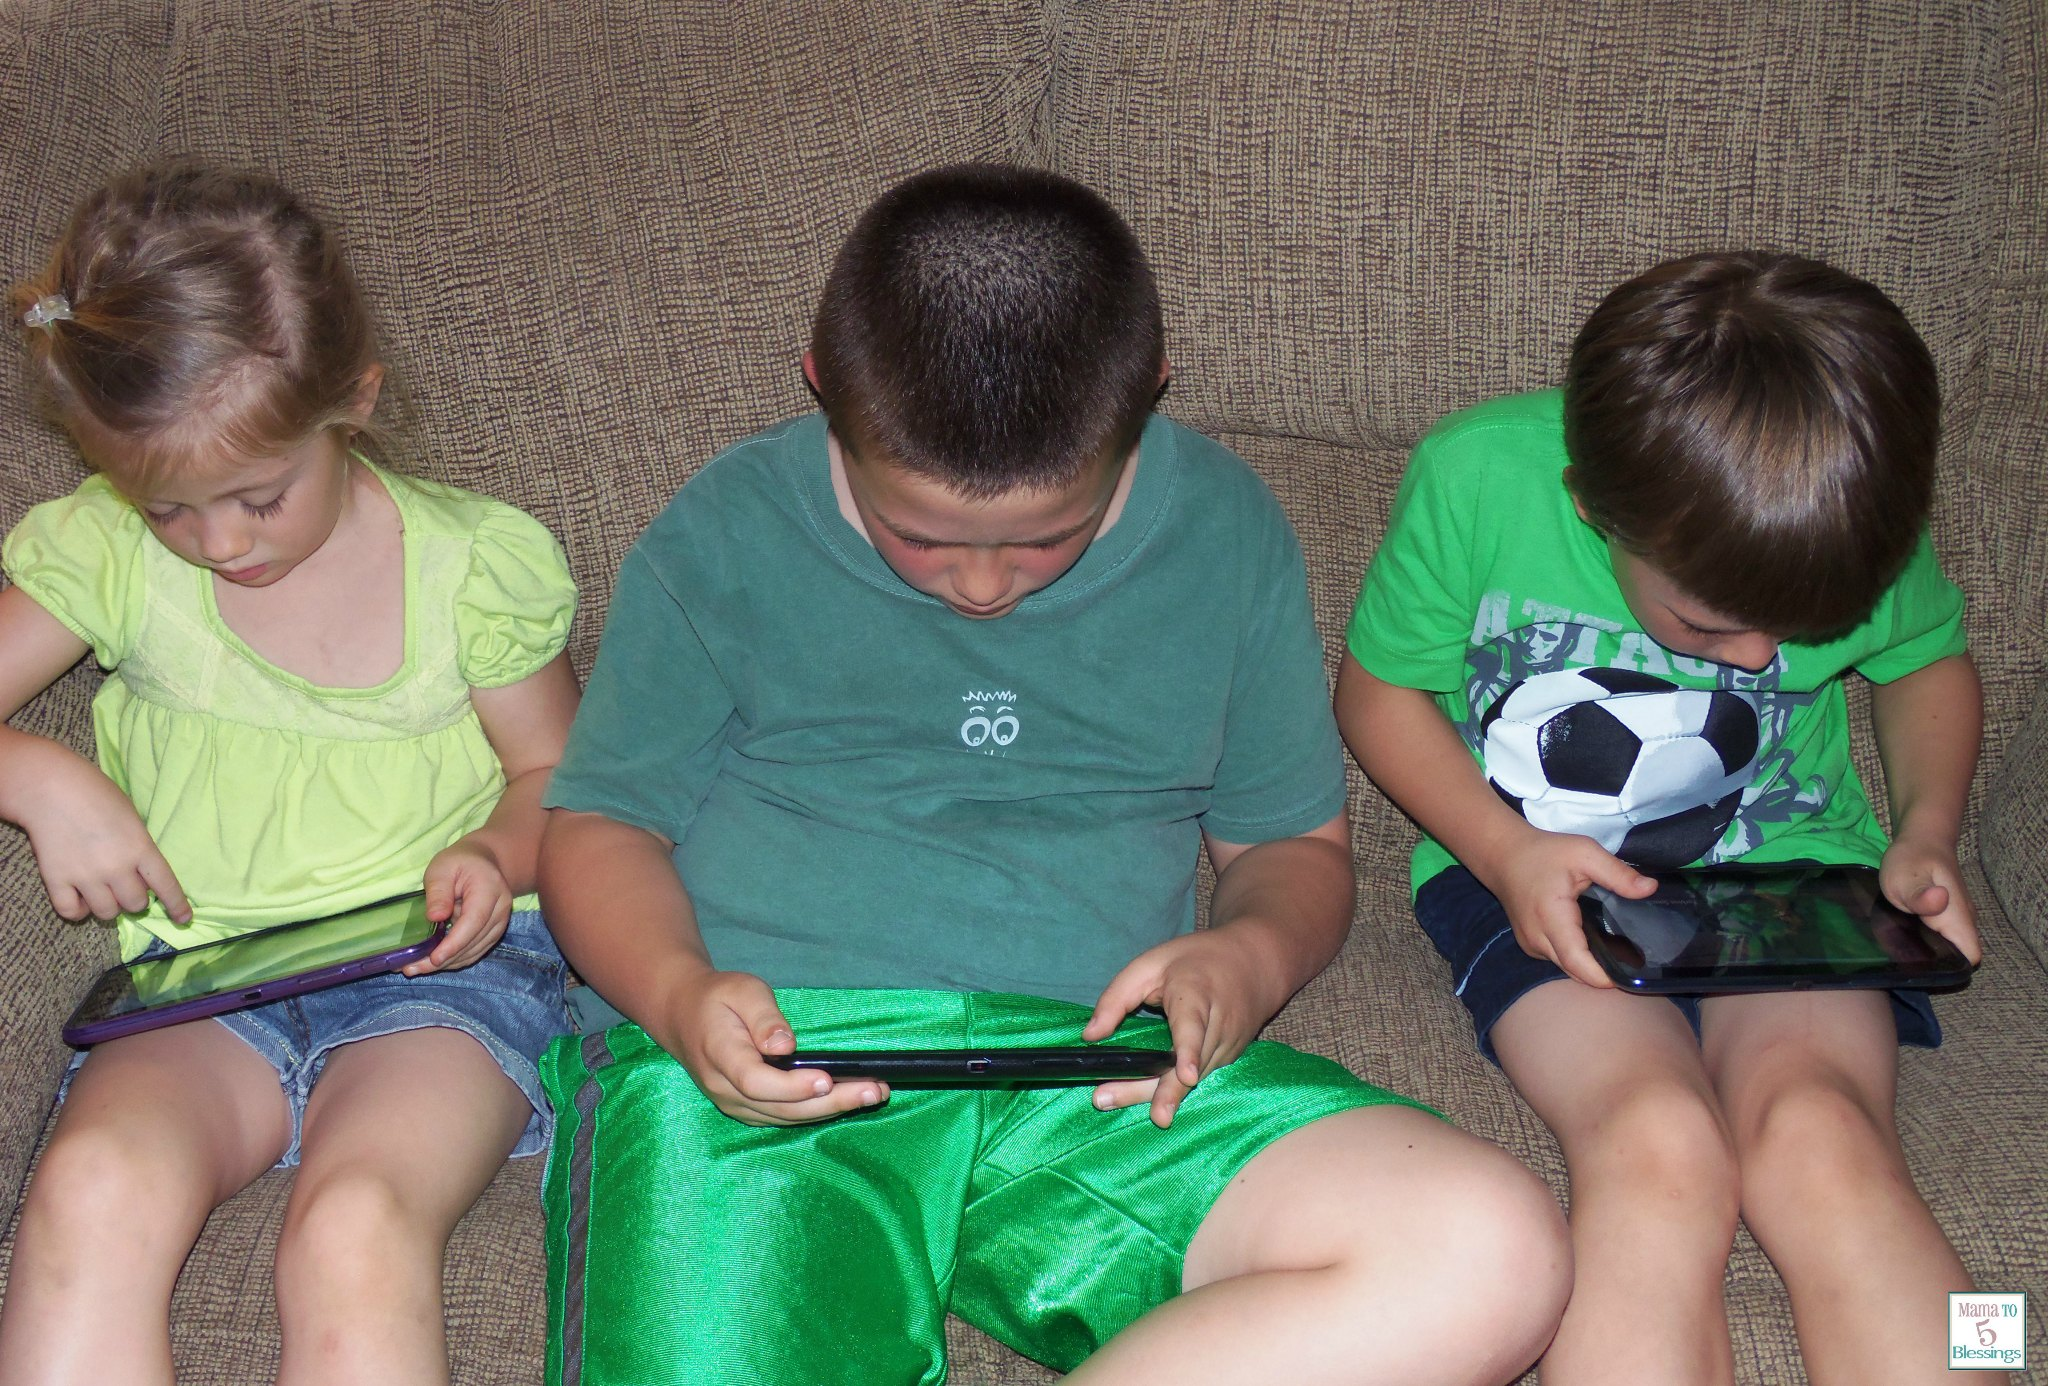 kids playing tablets